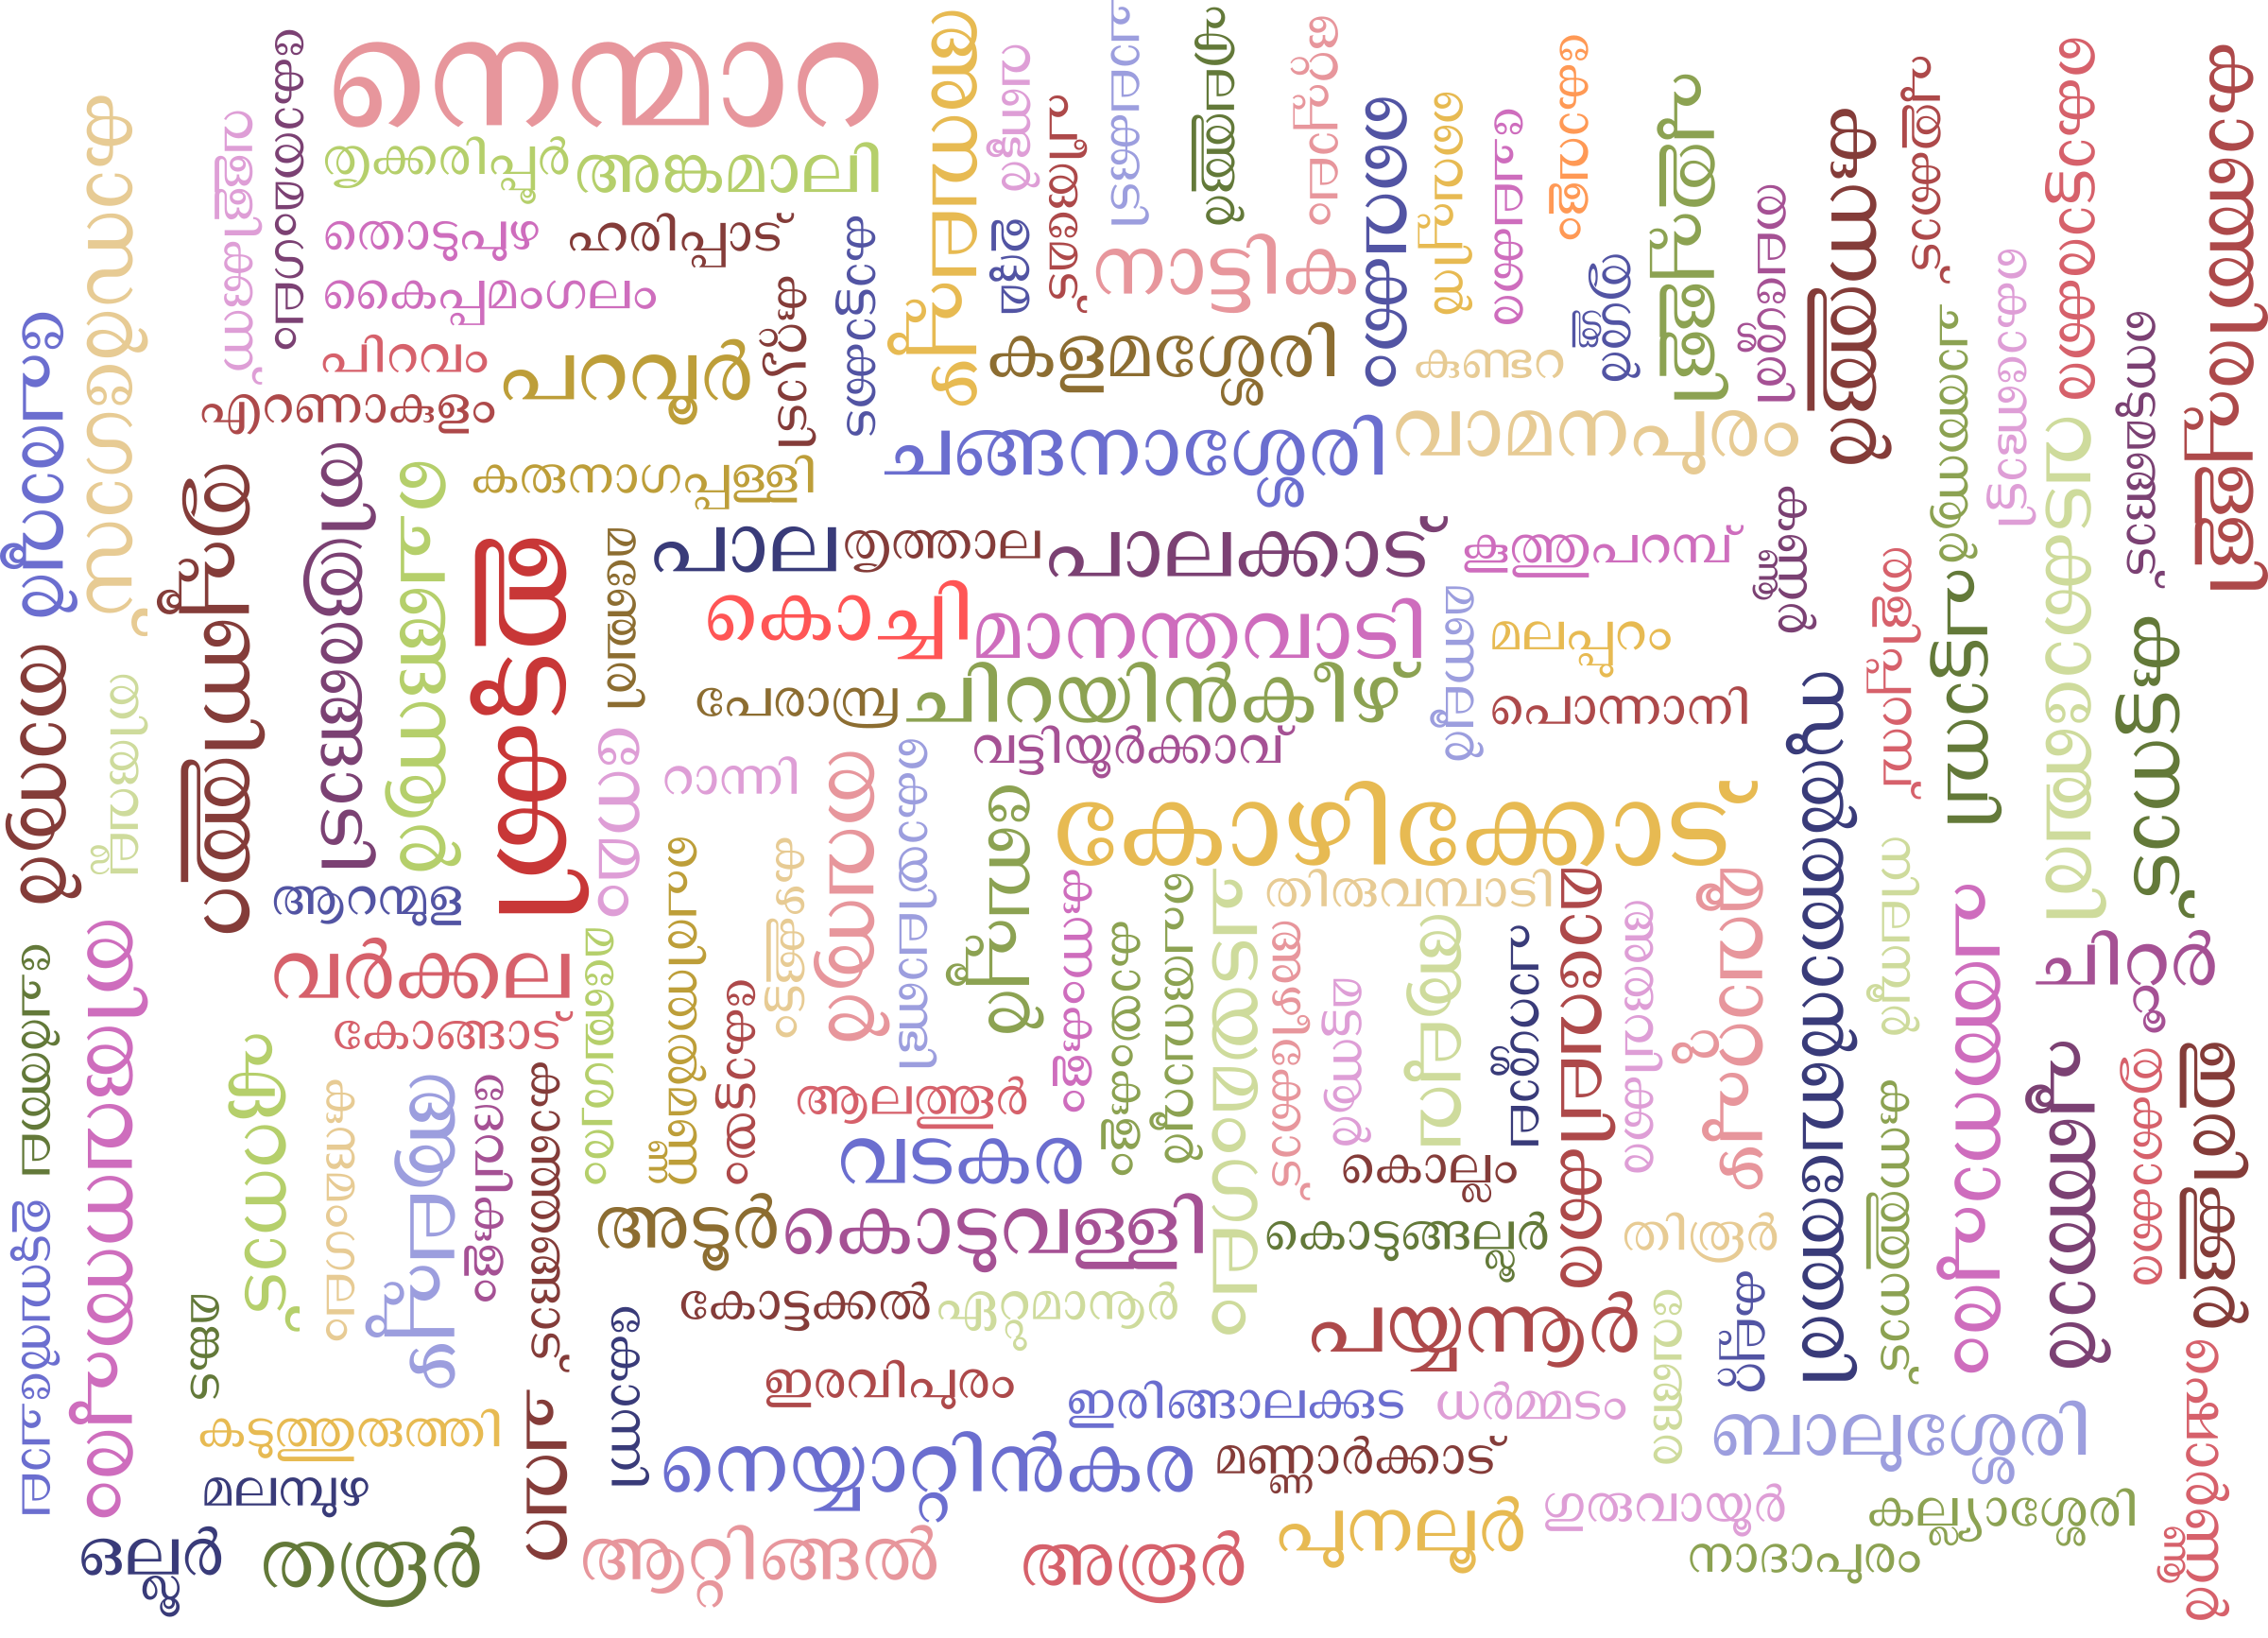 Malayalam Word Cloud using Legislative Assembly constituencies in Kerala by navaneethks